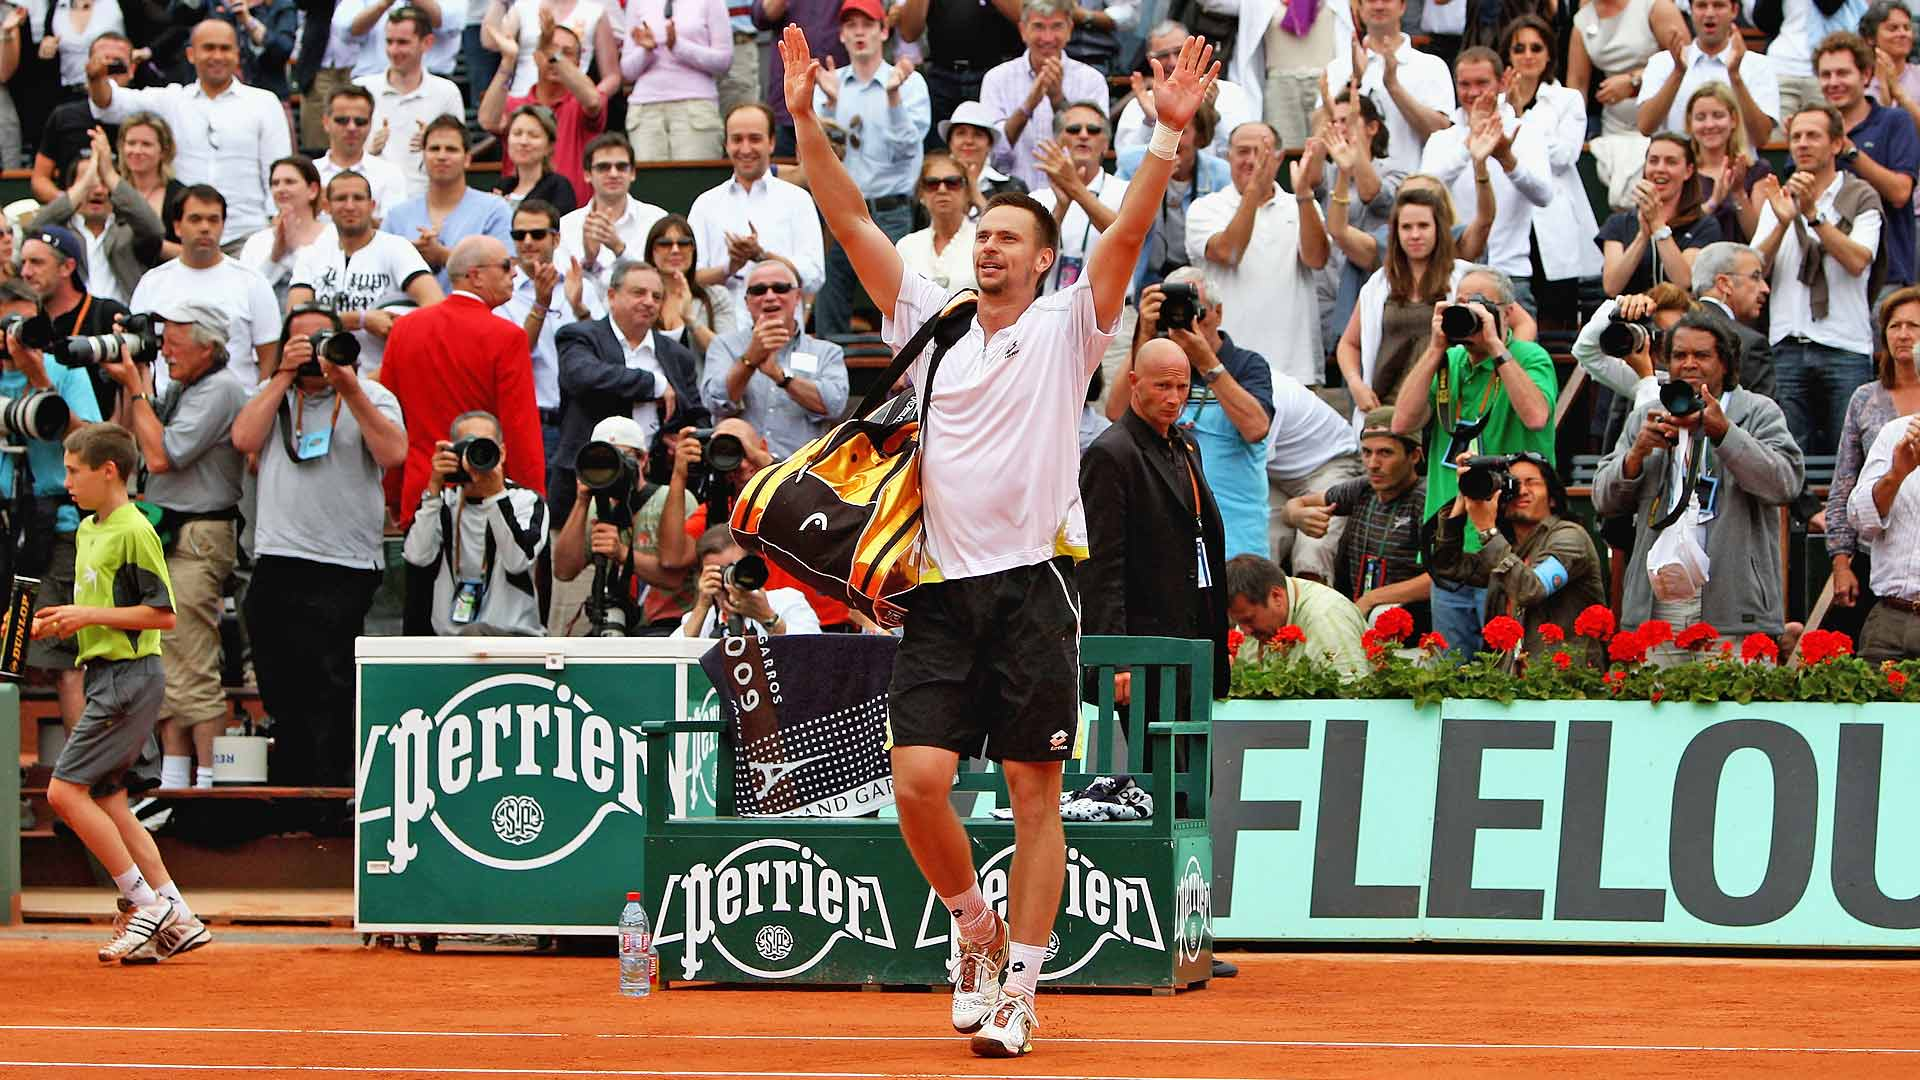 <a href='https://www.atptour.com/en/players/robin-soderling/sa49/overview'>Robin Soderling</a> celebrates his 2009 <a href='https://www.atptour.com/en/tournaments/roland-garros/520/overview'>Roland Garros</a> win against <a href='https://www.atptour.com/en/players/rafael-nadal/n409/overview'>Rafael Nadal</a>